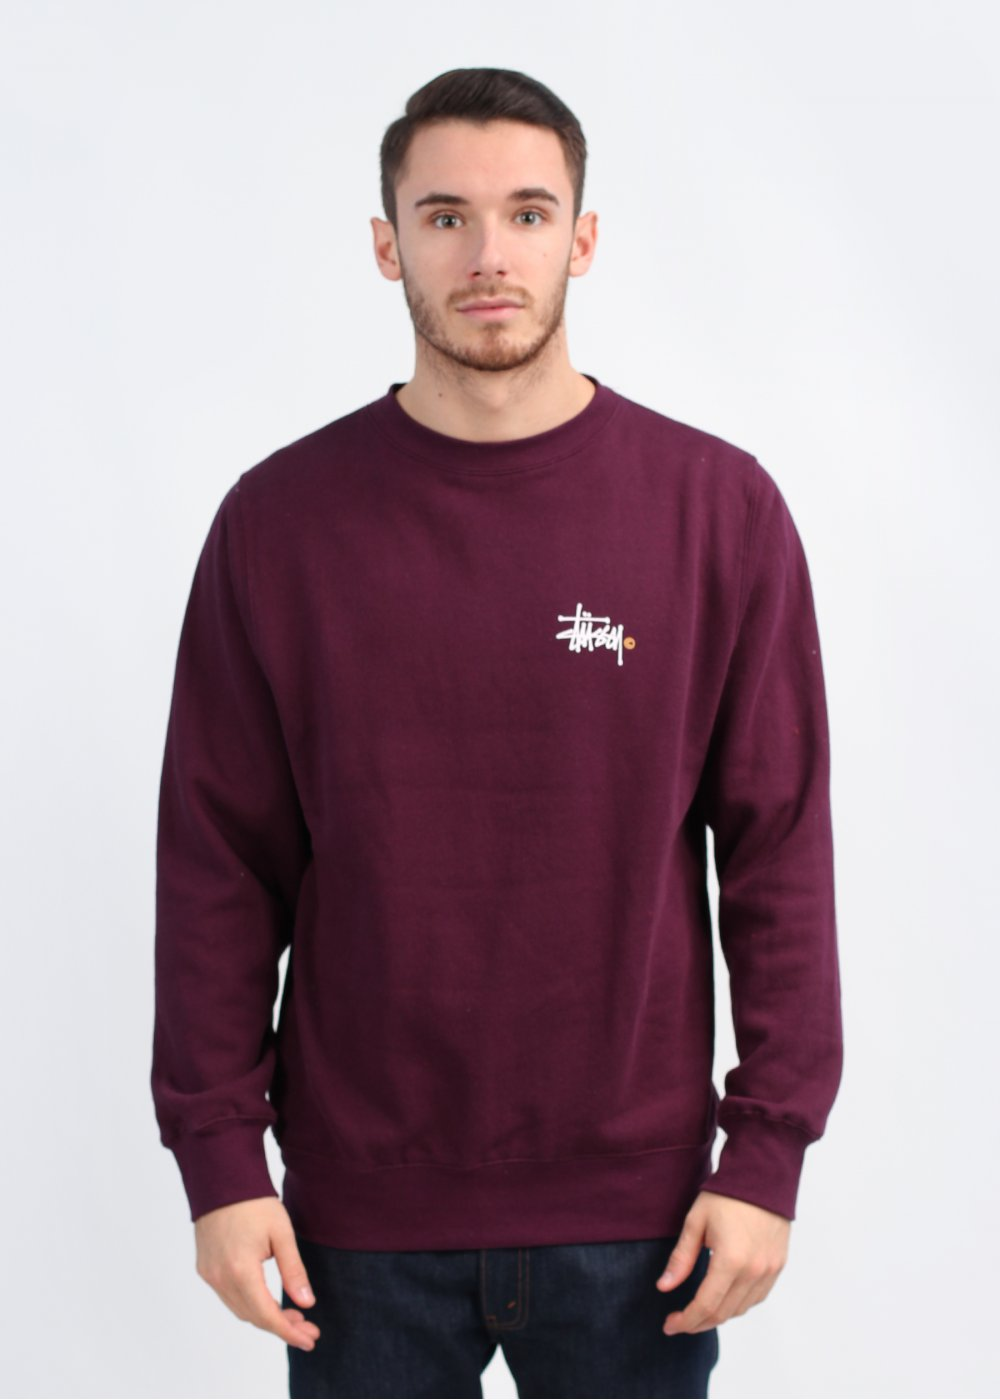 Stussy Clothing Uk Stockists Basic Logo Crew Sweatshirt